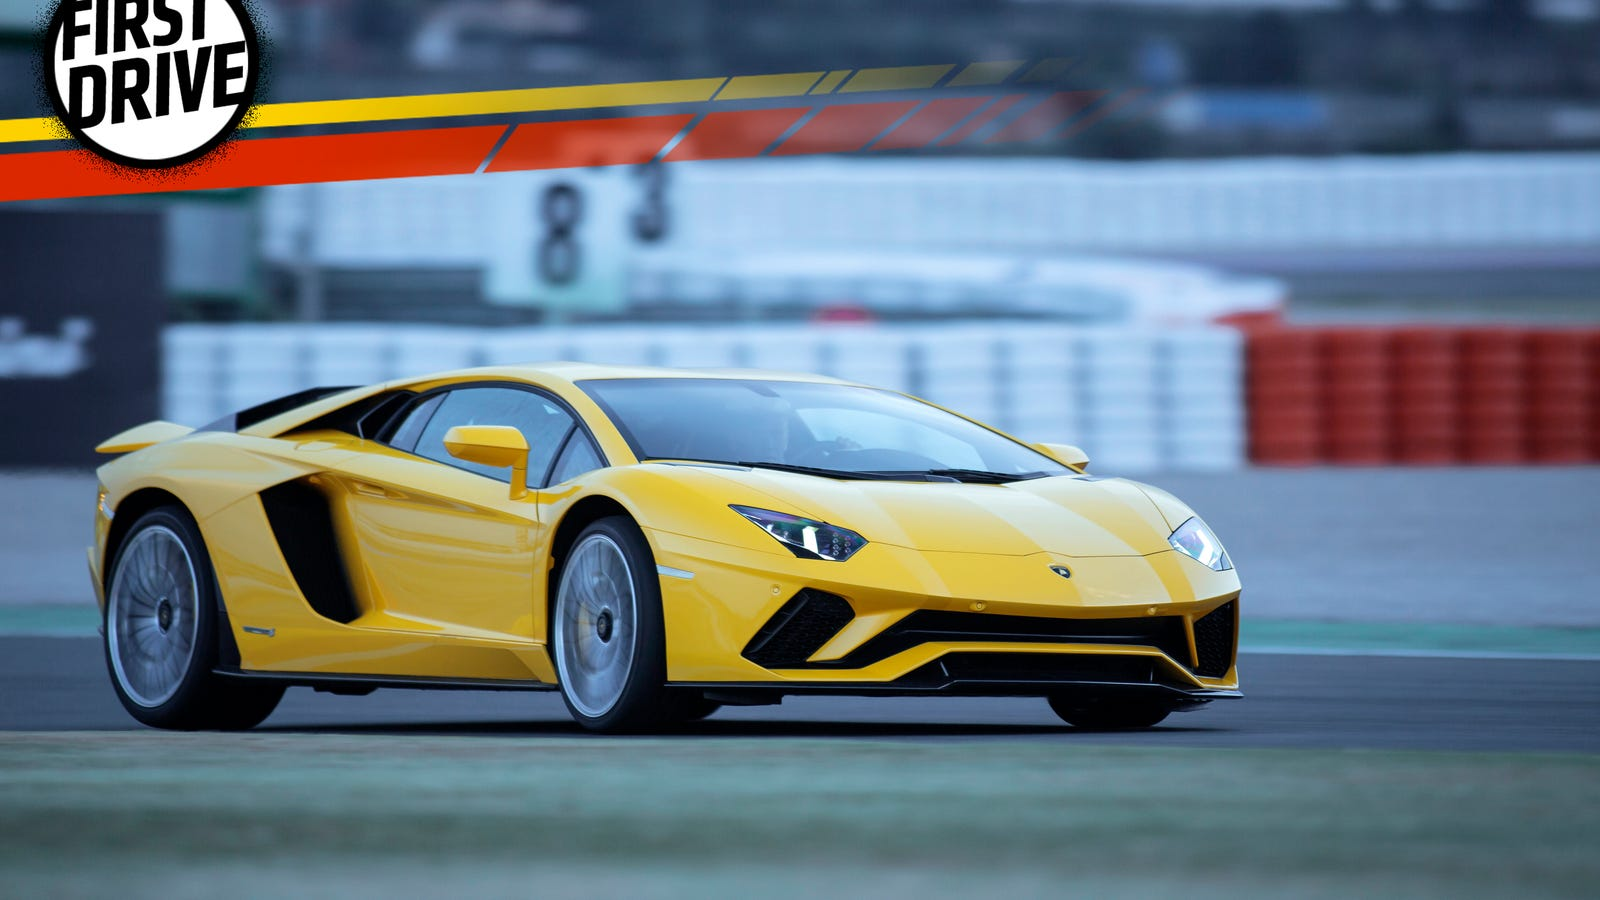 The 2017 Lamborghini Aventador S Will Make You An Instagram God With Gold Lamborghini Aventador Roof Less on lotus elise roof, ktm x-bow roof, fiat 500x roof, bugatti veyron roof, porsche boxster roof, nissan leaf roof, jaguar xj roof, maybach roof, bmw m3 roof, caterham 7 roof, jeep wrangler roof, volkswagen golf roof, dodge ram roof, honda accord roof, ferrari 458 spider roof, ford mustang roof, porsche 918 roof, ariel atom roof, jeep grand cherokee roof, porsche panamera roof,